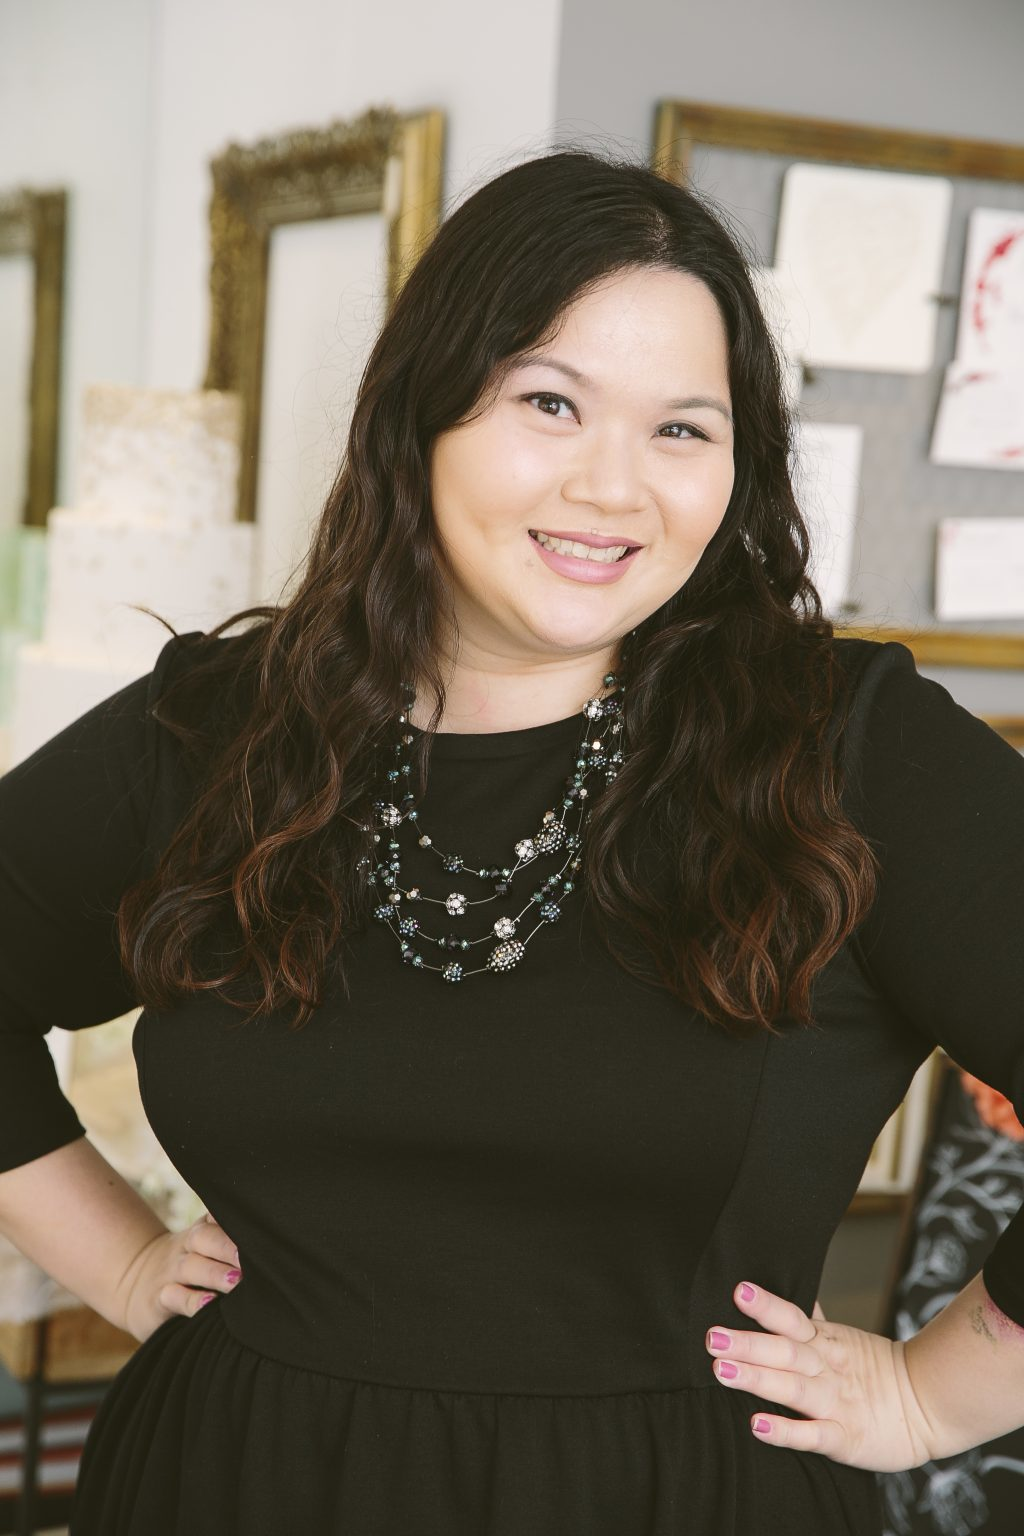 Meet the staff at the Bella Figura flagship store: Su-Queen Teo